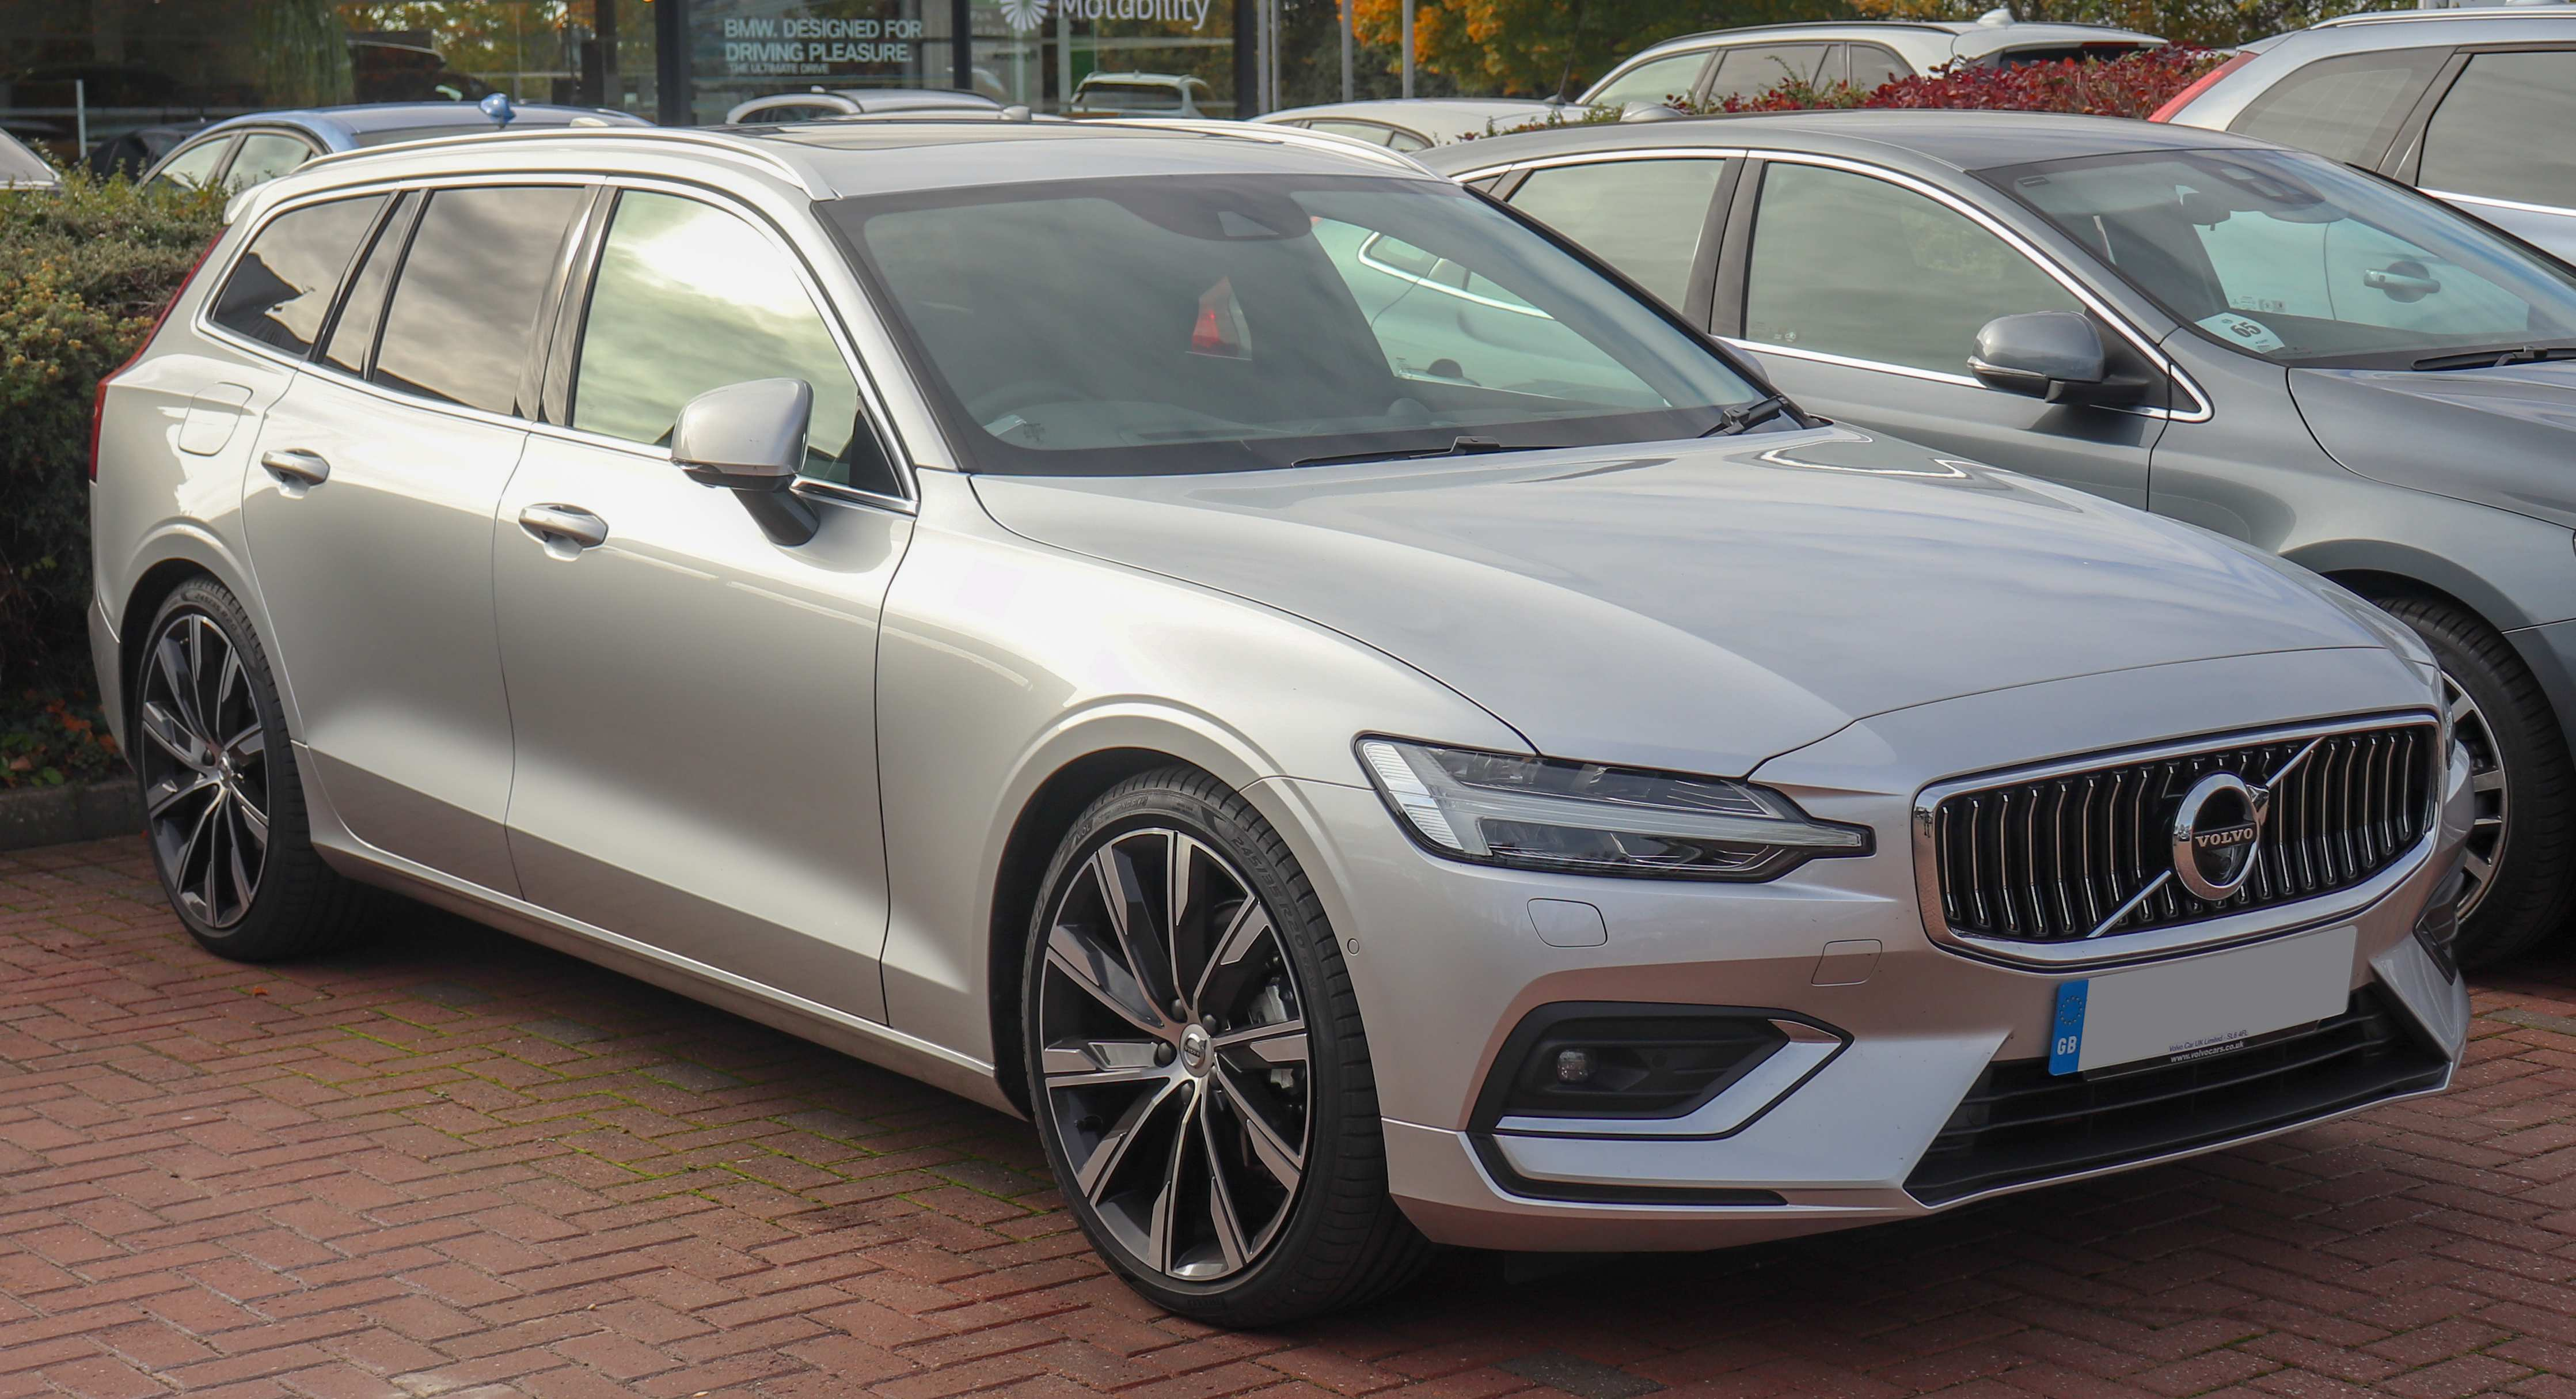 81 The Best Volvo V60 2019 Dimensions Redesign